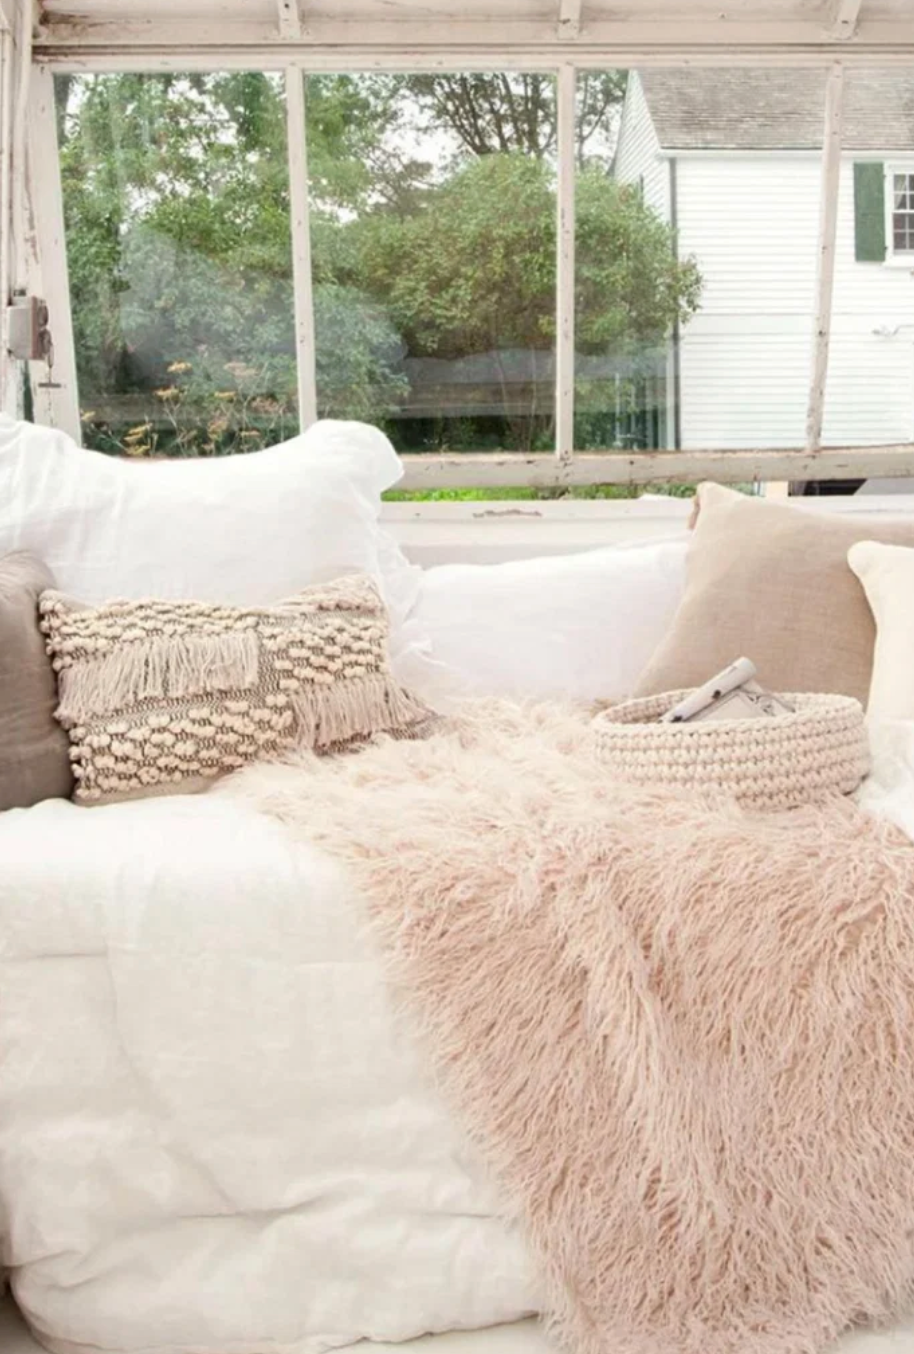 a bench in front of a window with shabby chic pillows and blankets on it